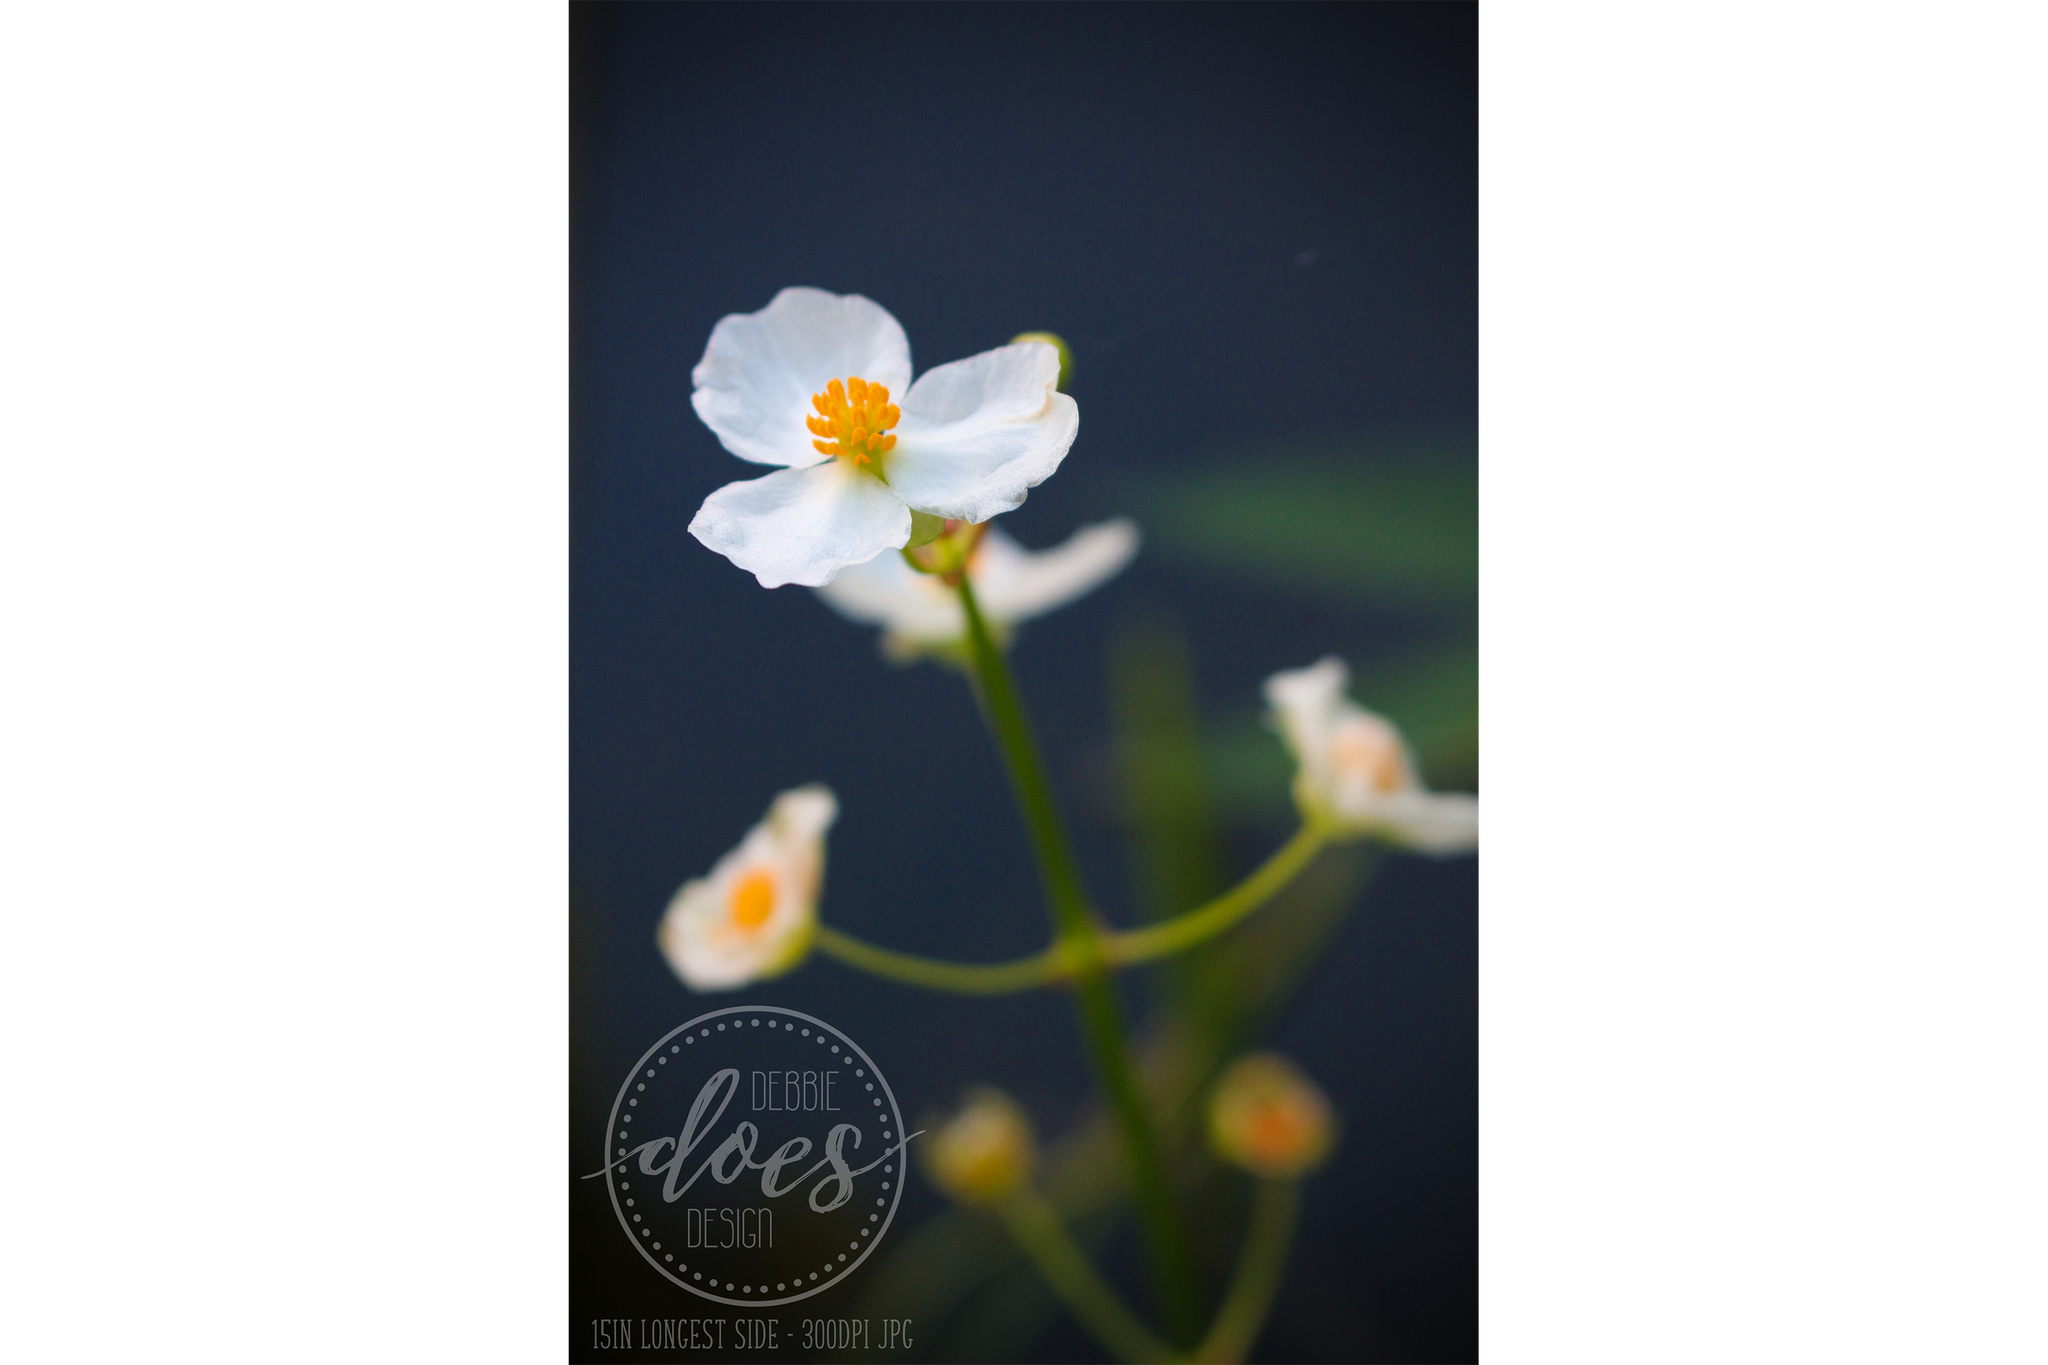 Water Blossom - Flower - High Res Digital Photograph